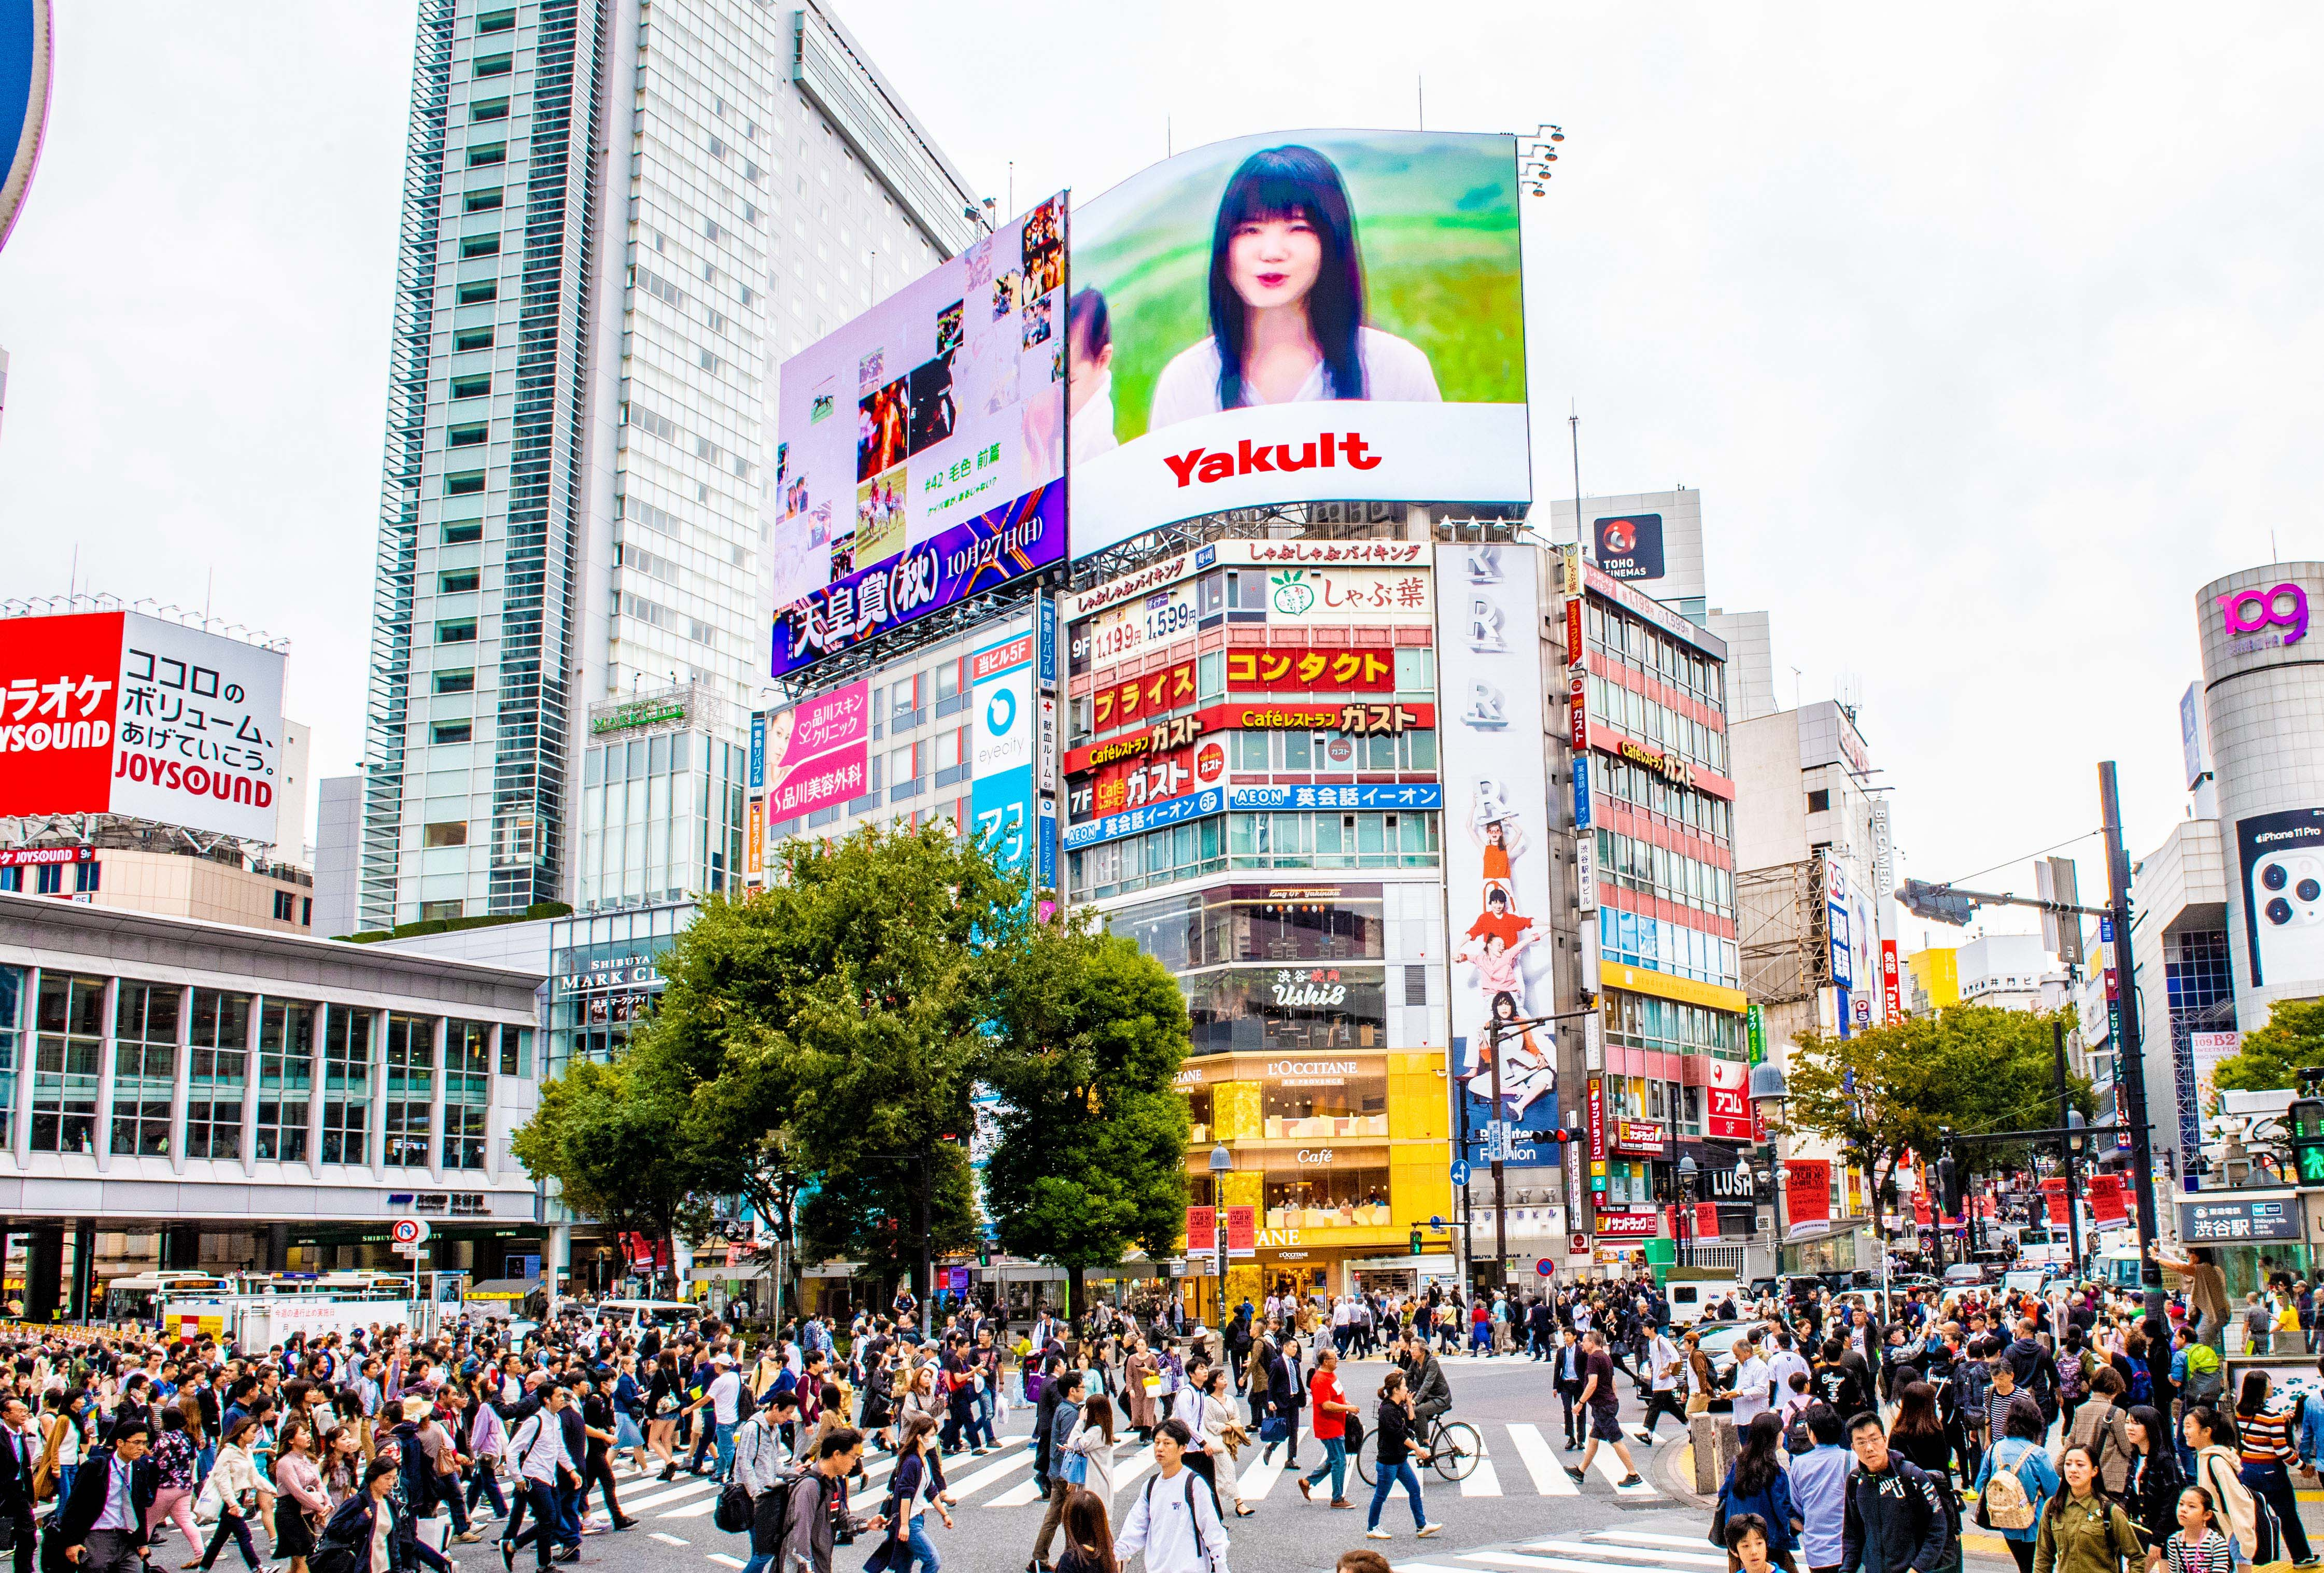 Shibuya Crossing in Tokyo, the busiest intersection in the world.